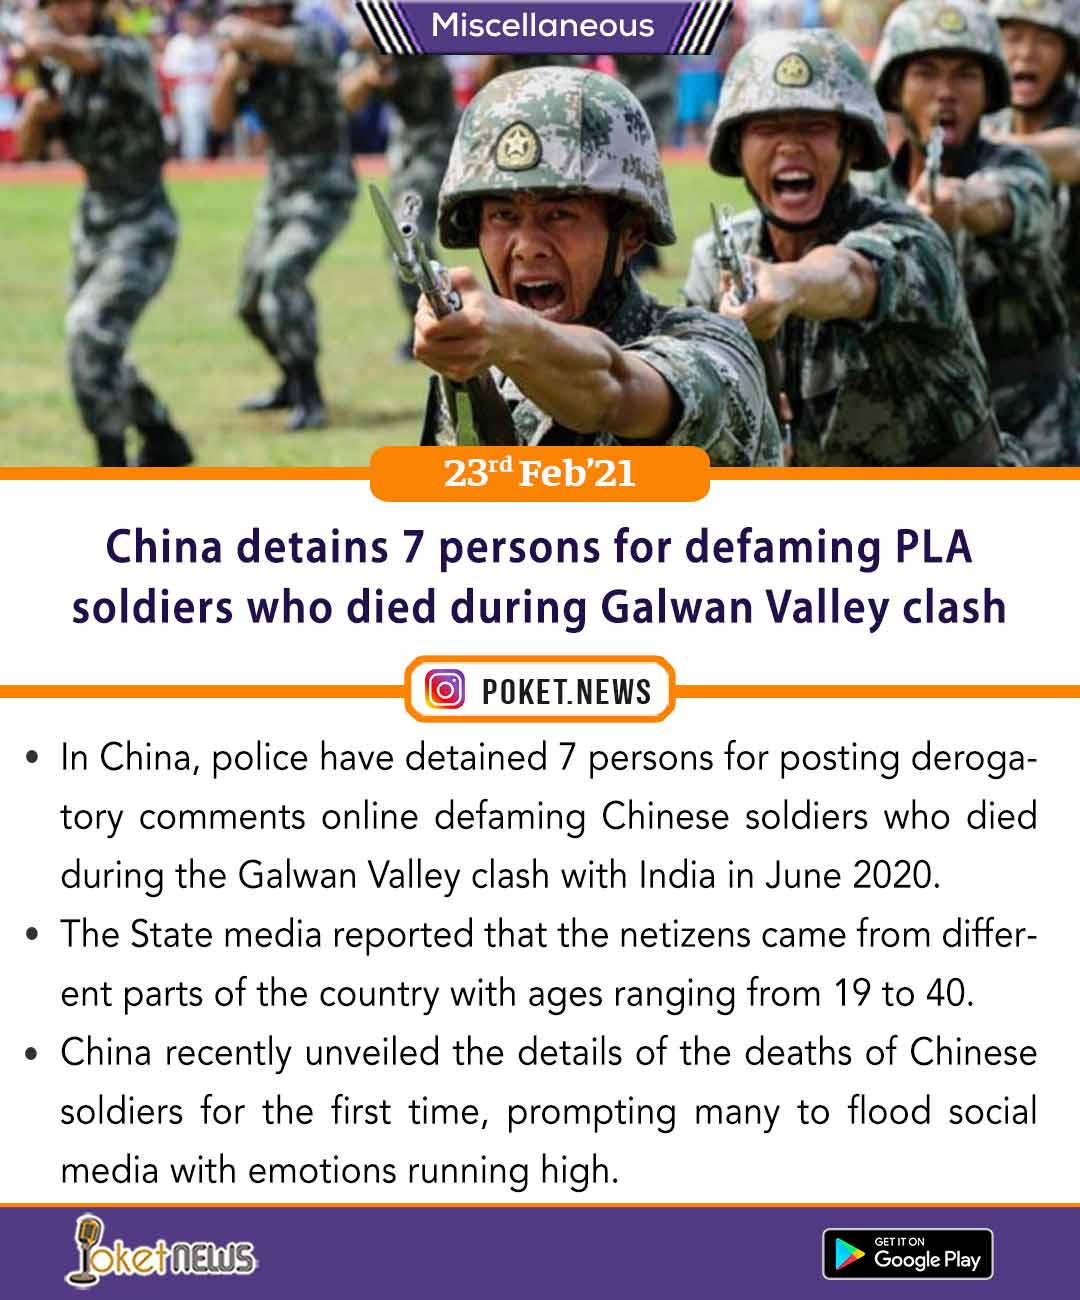 China detains 7 persons for defaming PLA soldiers who died during Galwan Valley clash